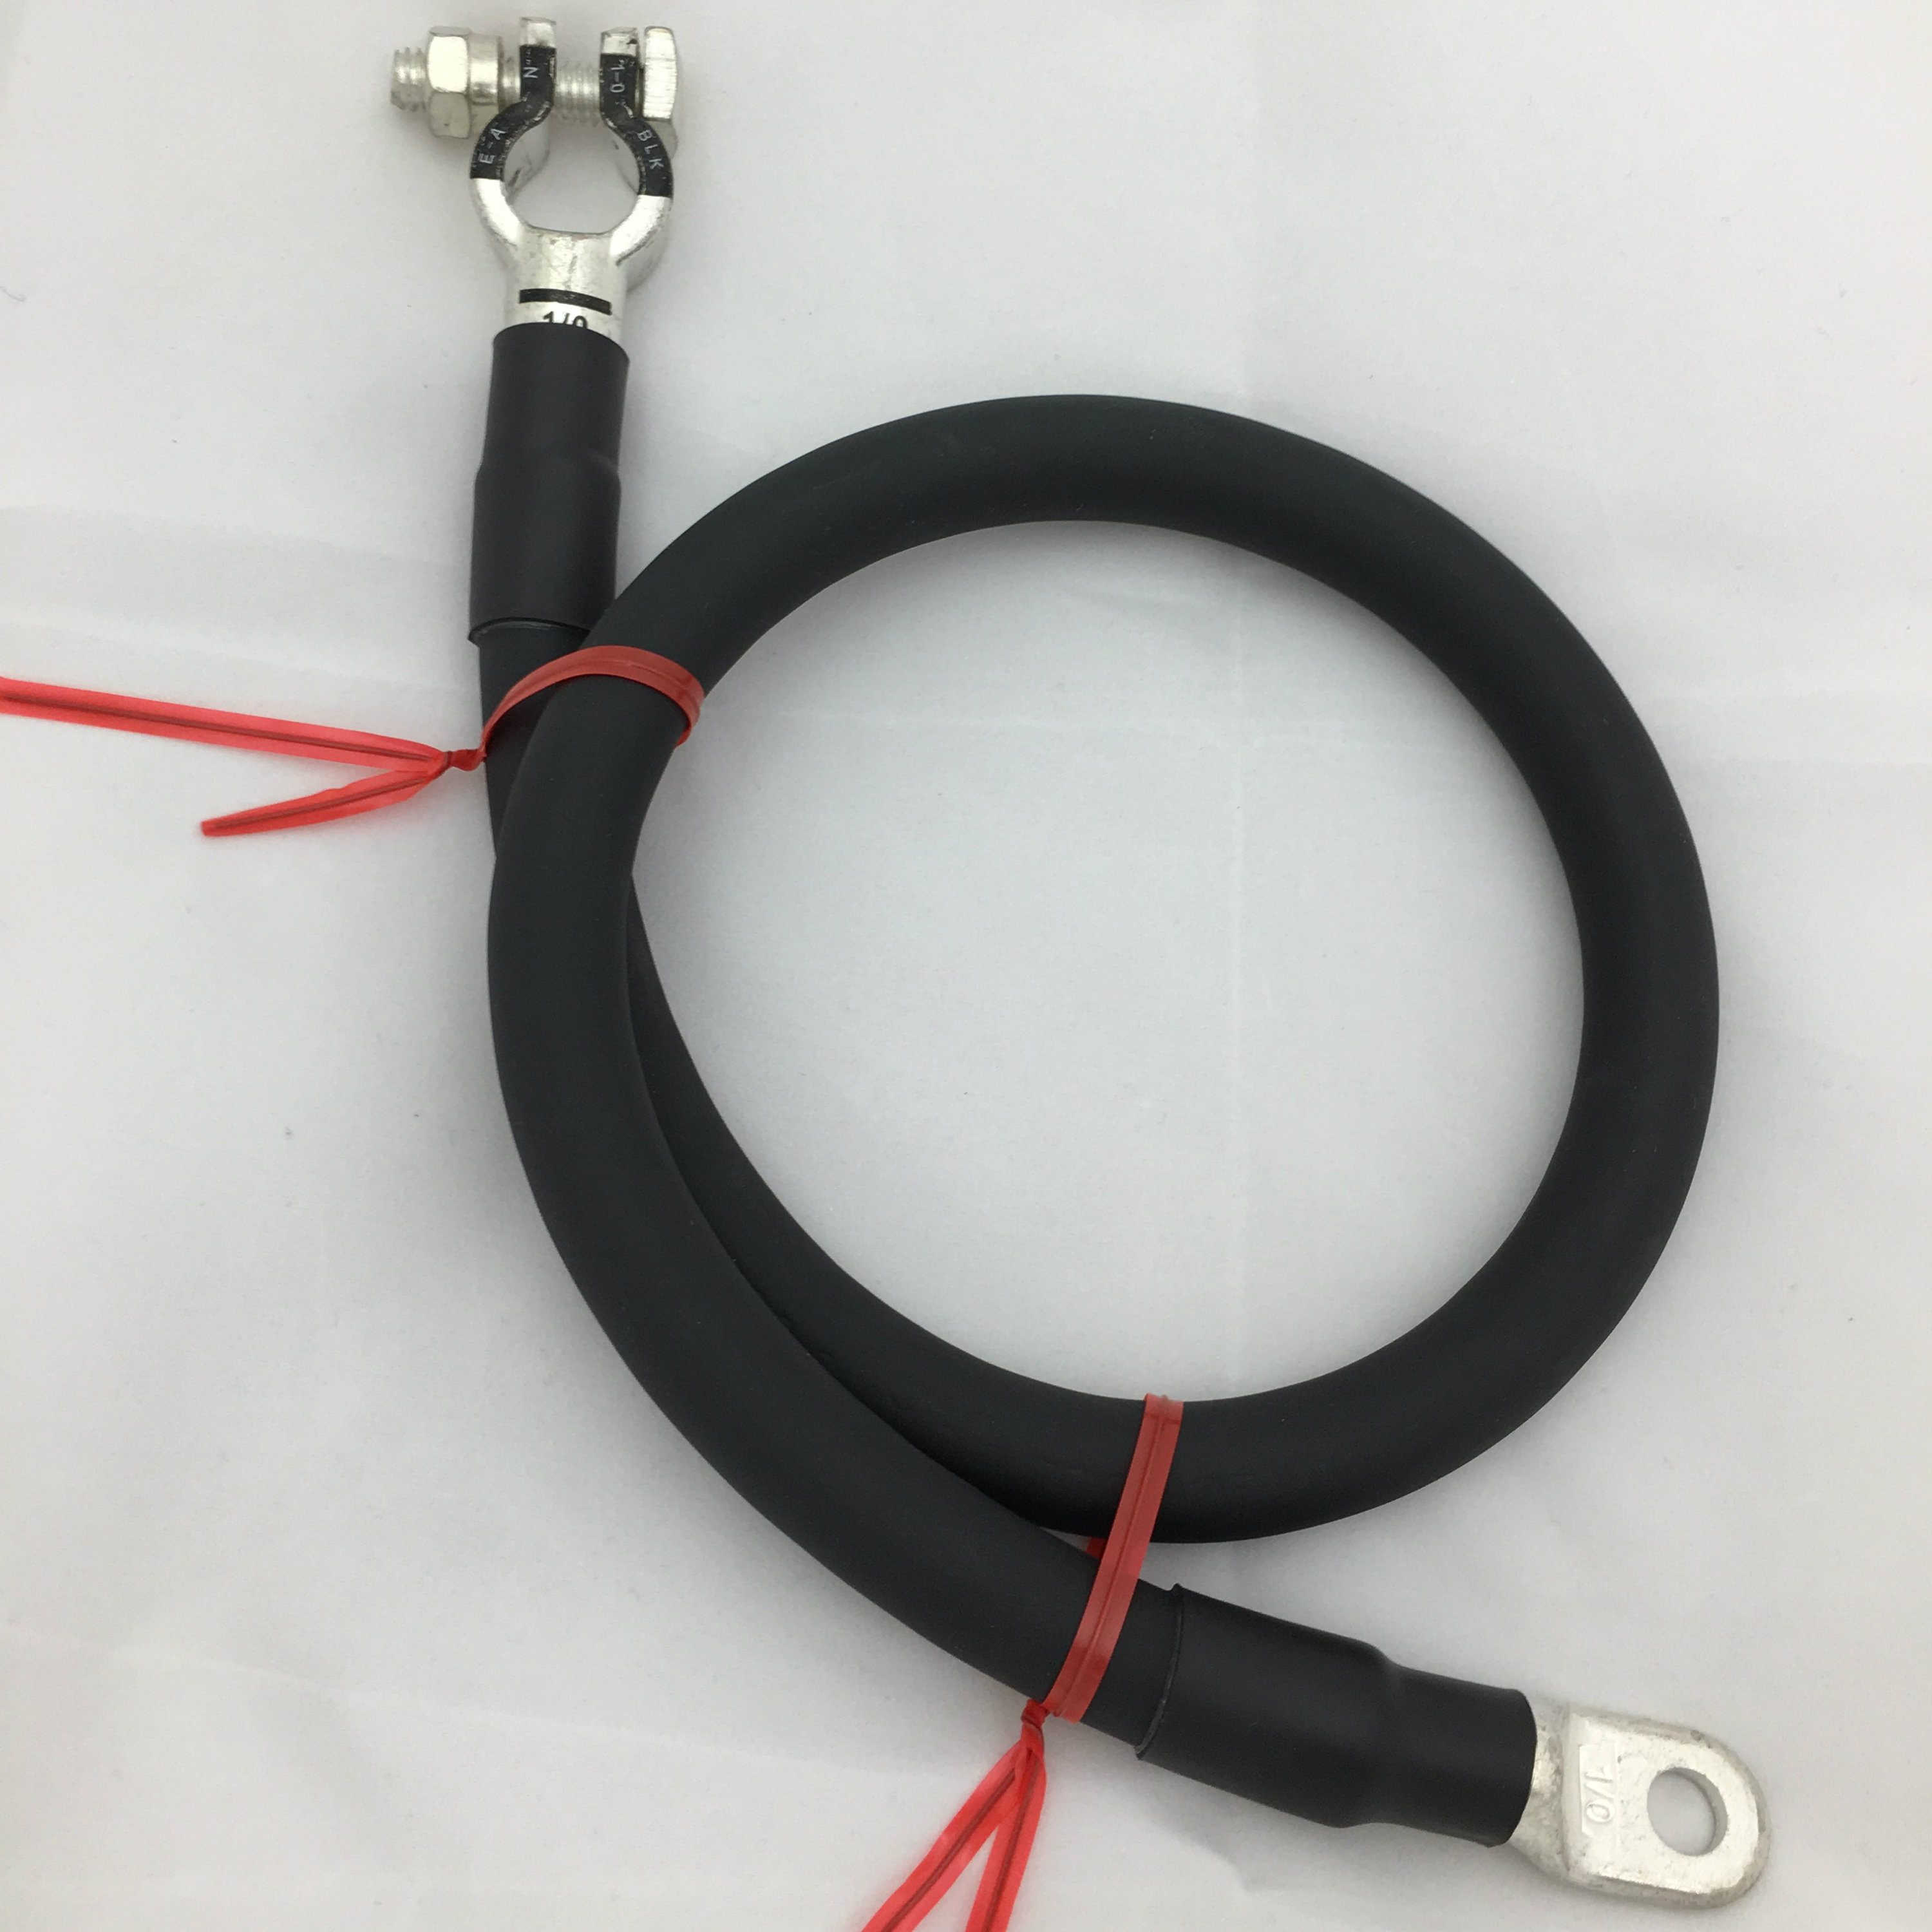 4 Gauge Awg Negative Battery Cable With Top Post Terminal